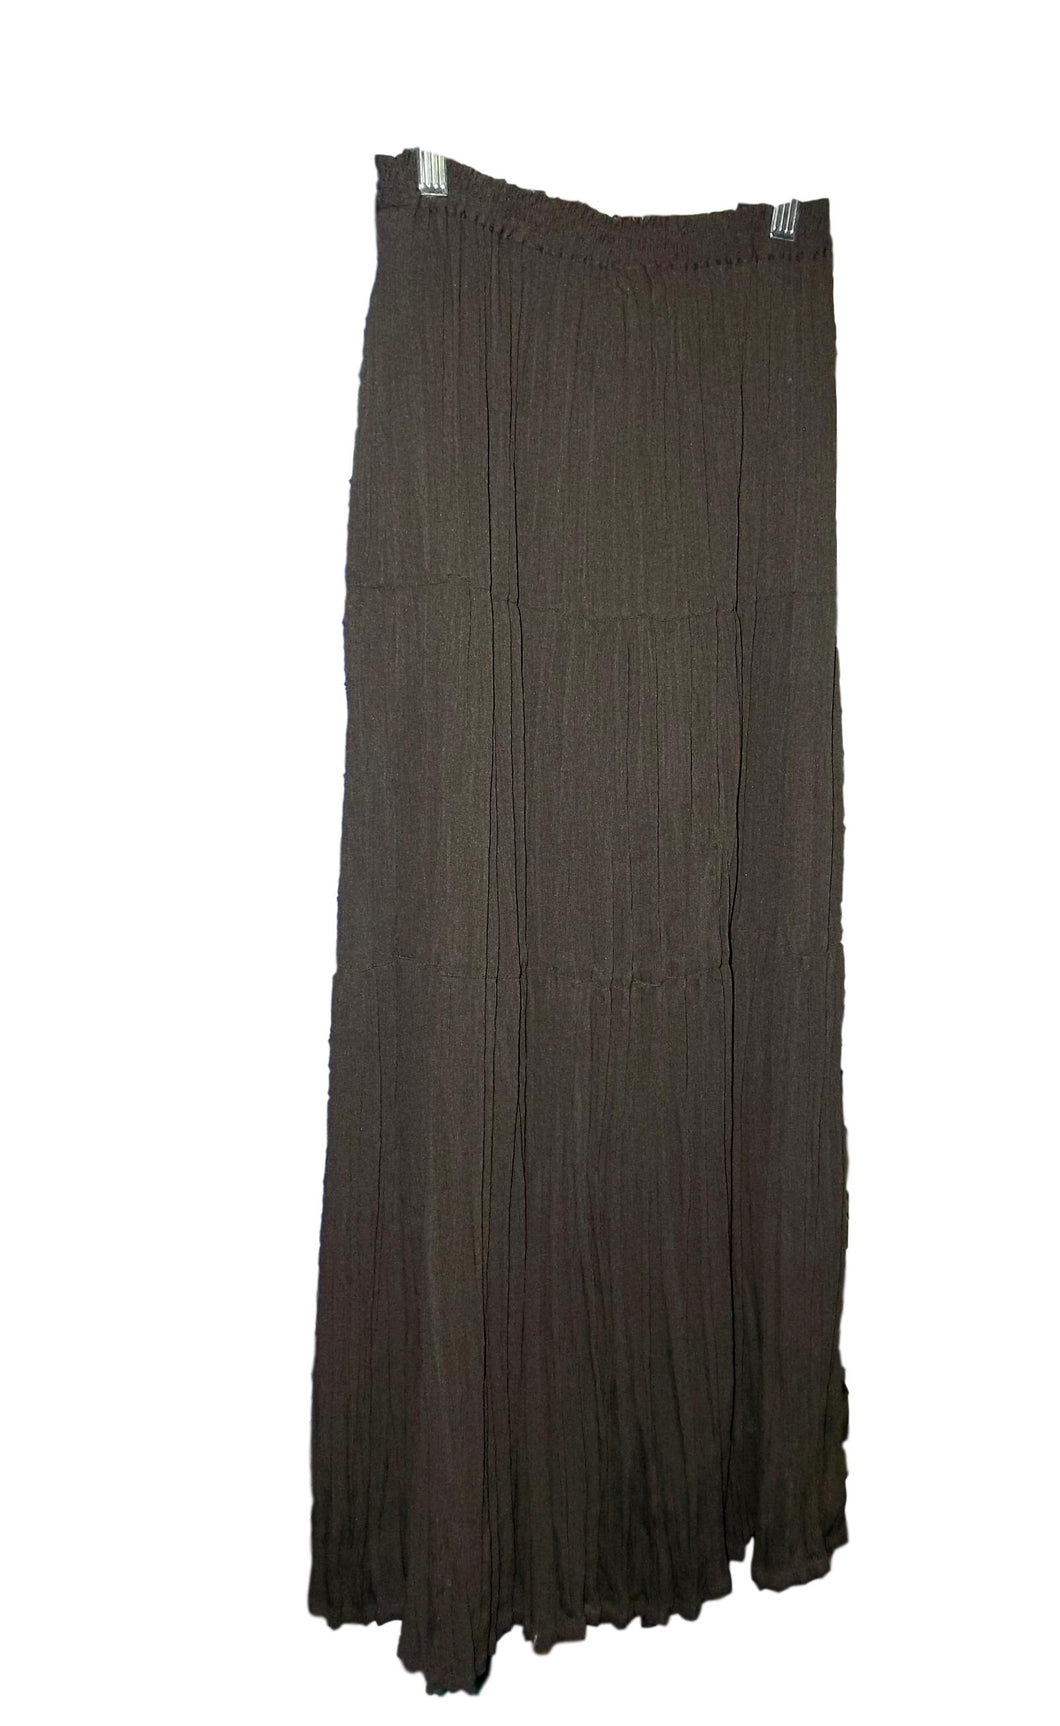 Brown Full Length Skirt